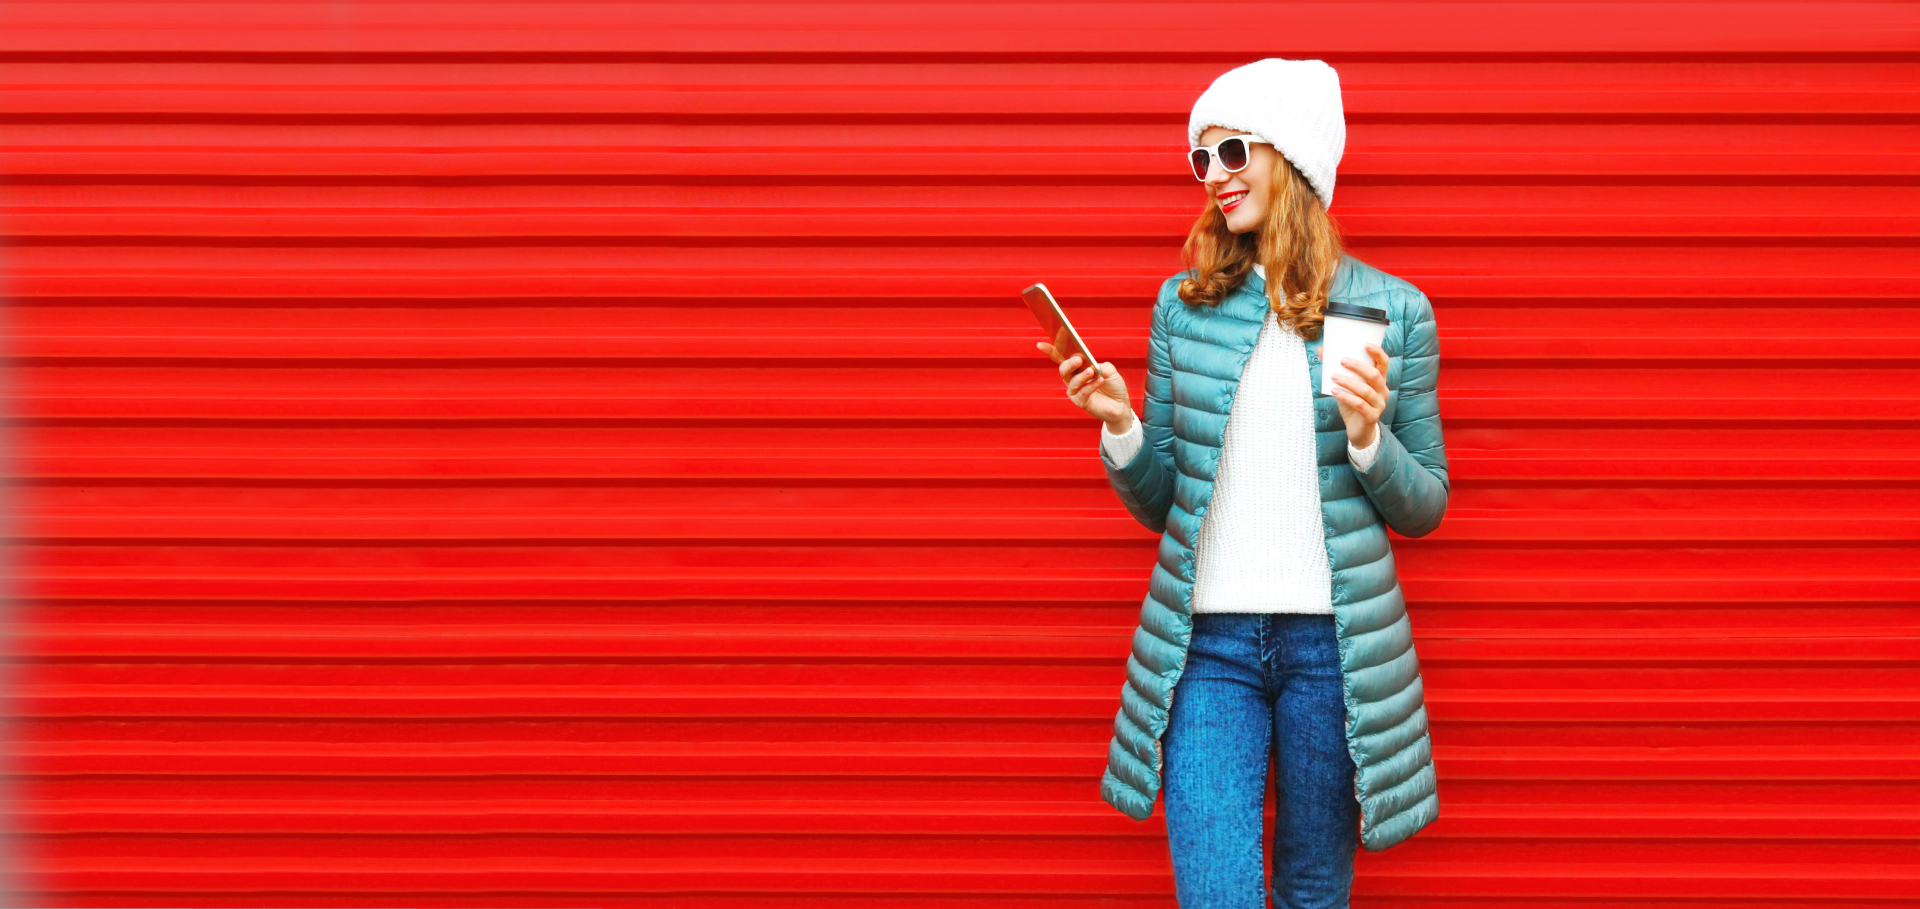 Fashion autumn smiling woman using smartphone holds coffee cup on a red background in the city